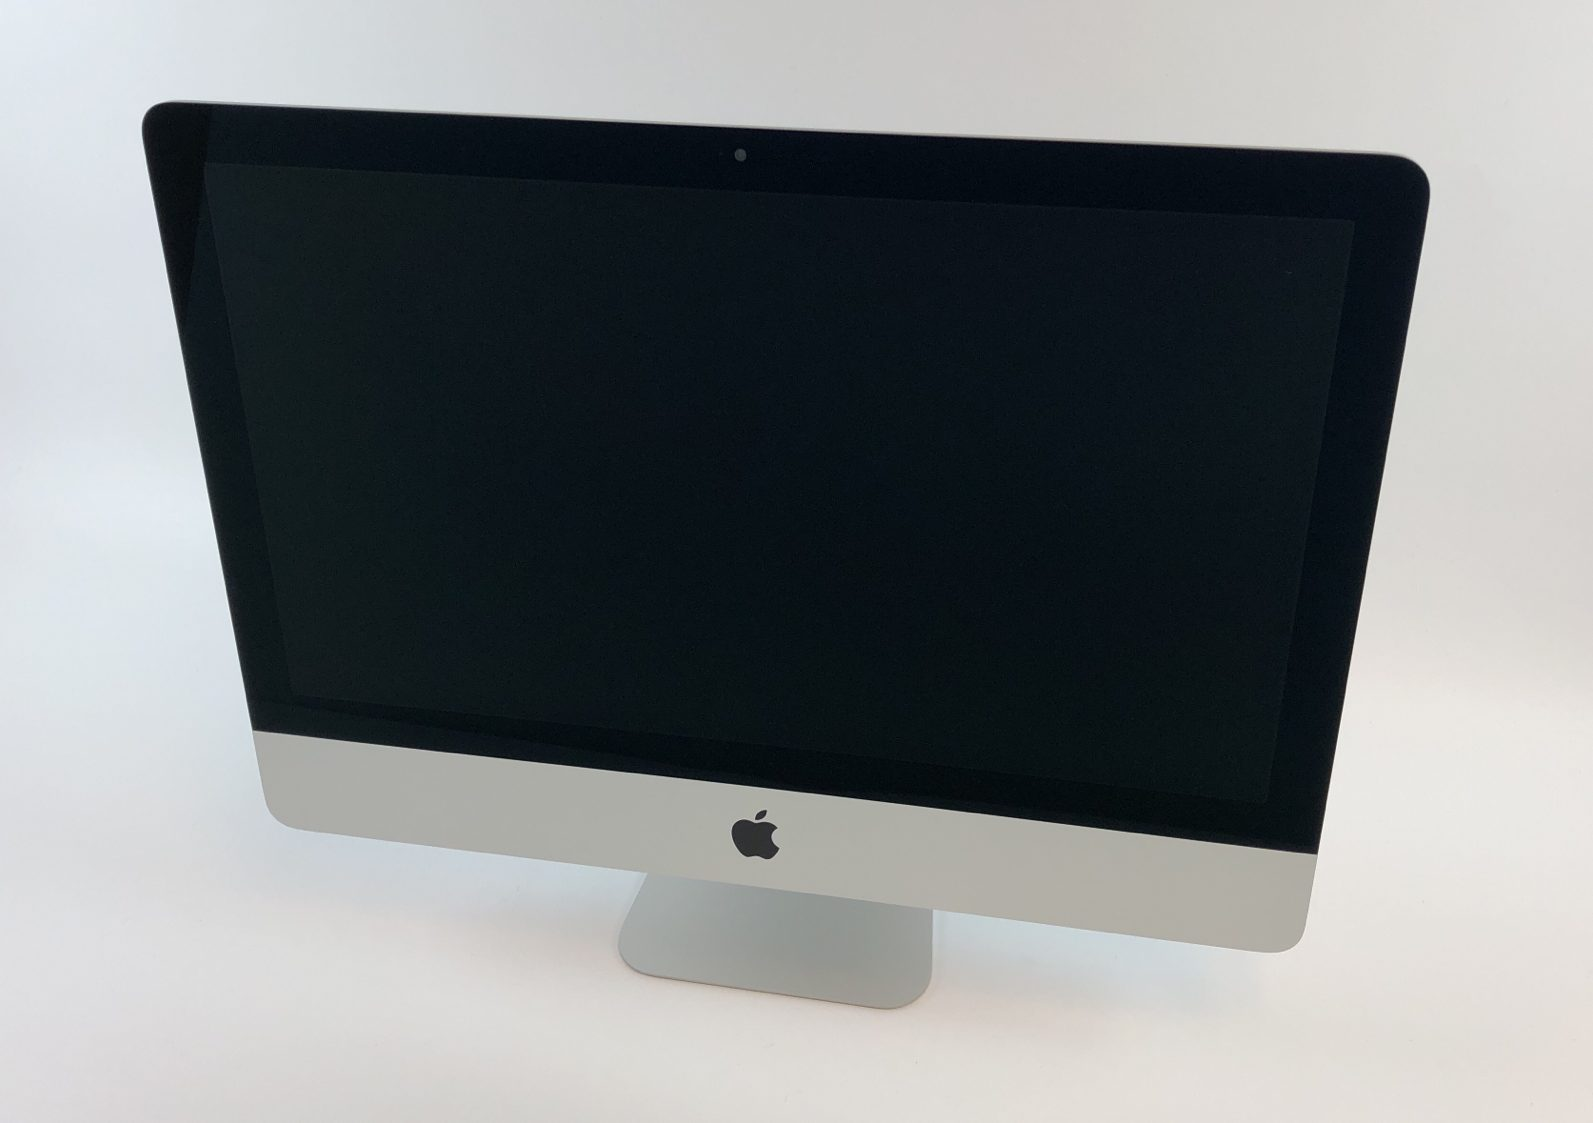 "iMac 21.5"" Late 2015 (Intel Core i5 1.6 GHz 8 GB RAM 1 TB HDD), Intel Core i5 1.6 GHz, 8 GB RAM, 1 TB HDD, bild 1"